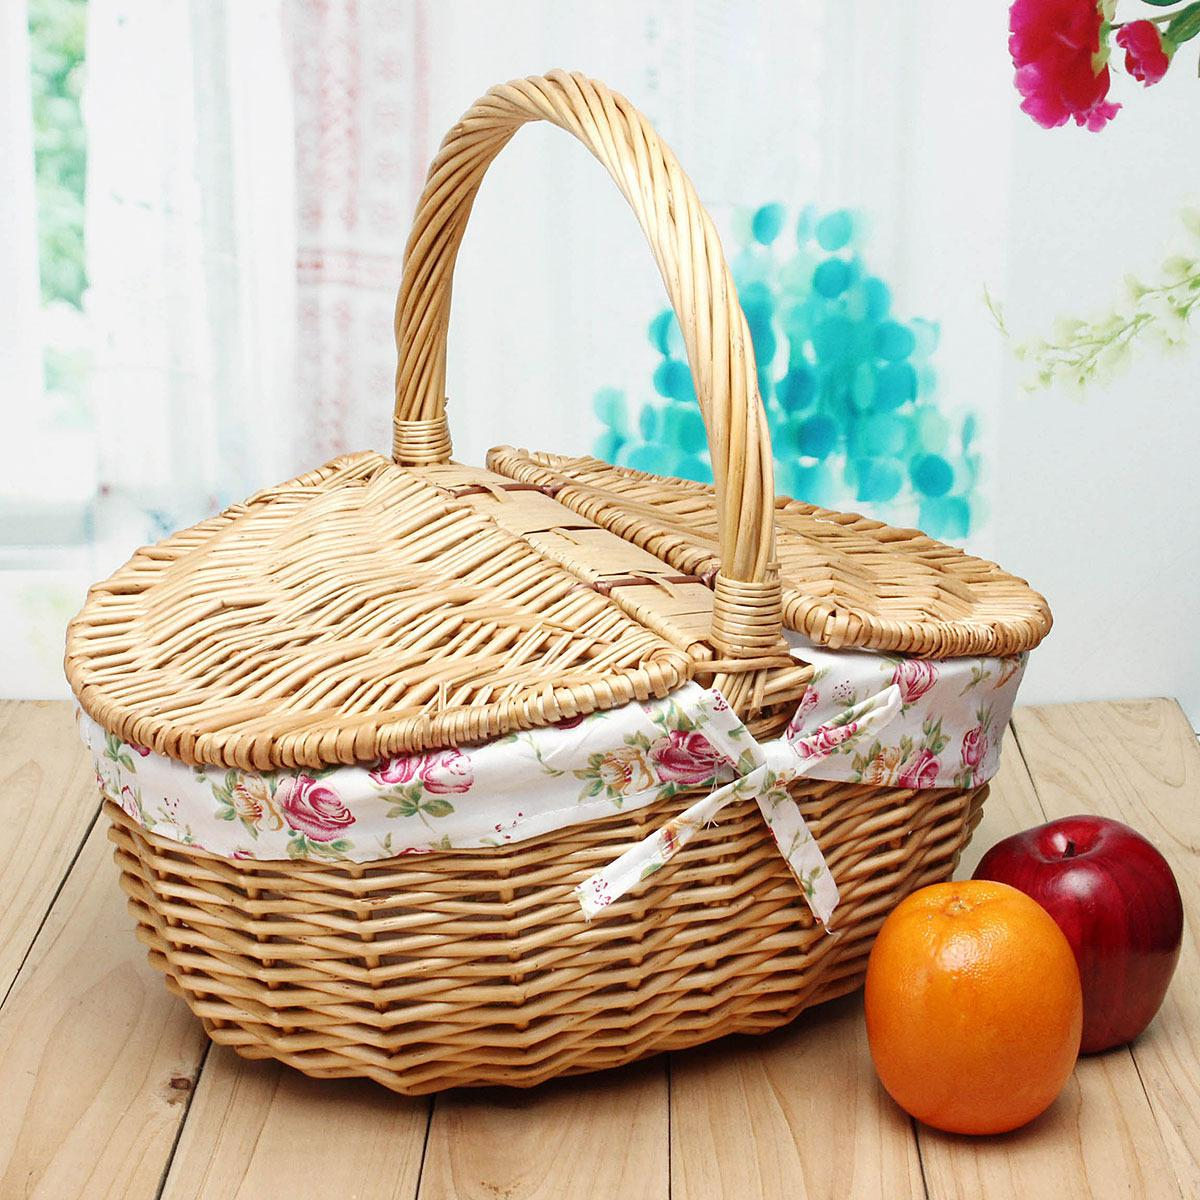 Review Travel Wicker Hand Picnic Storage Basket Shopping Hamper With Lid And Handle New Oem On China